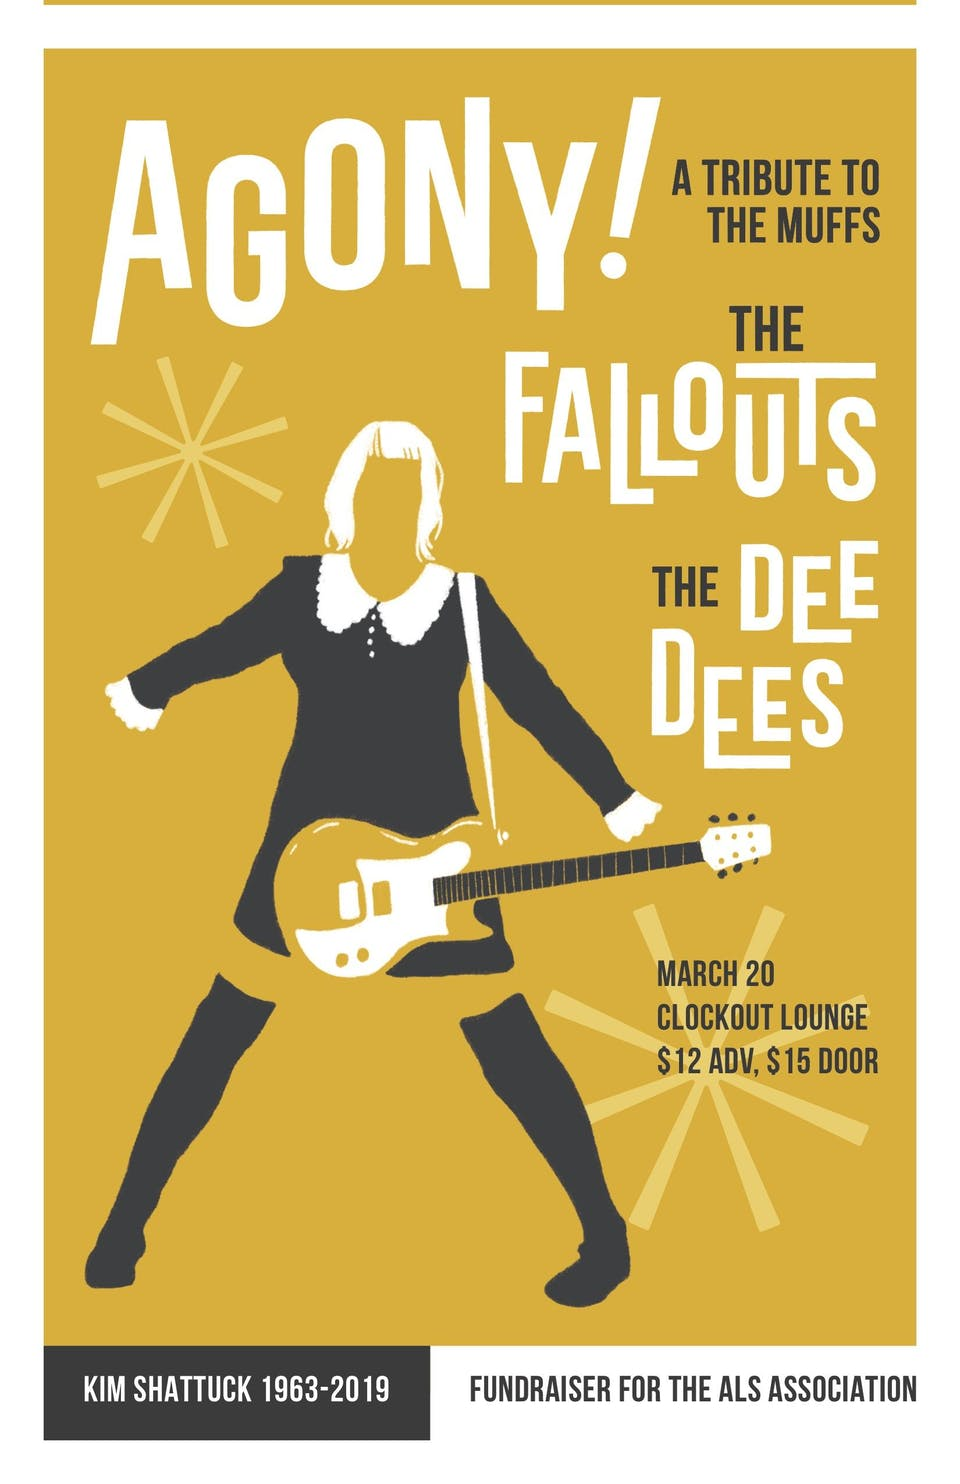 Agony!  A tribute to The Muffs